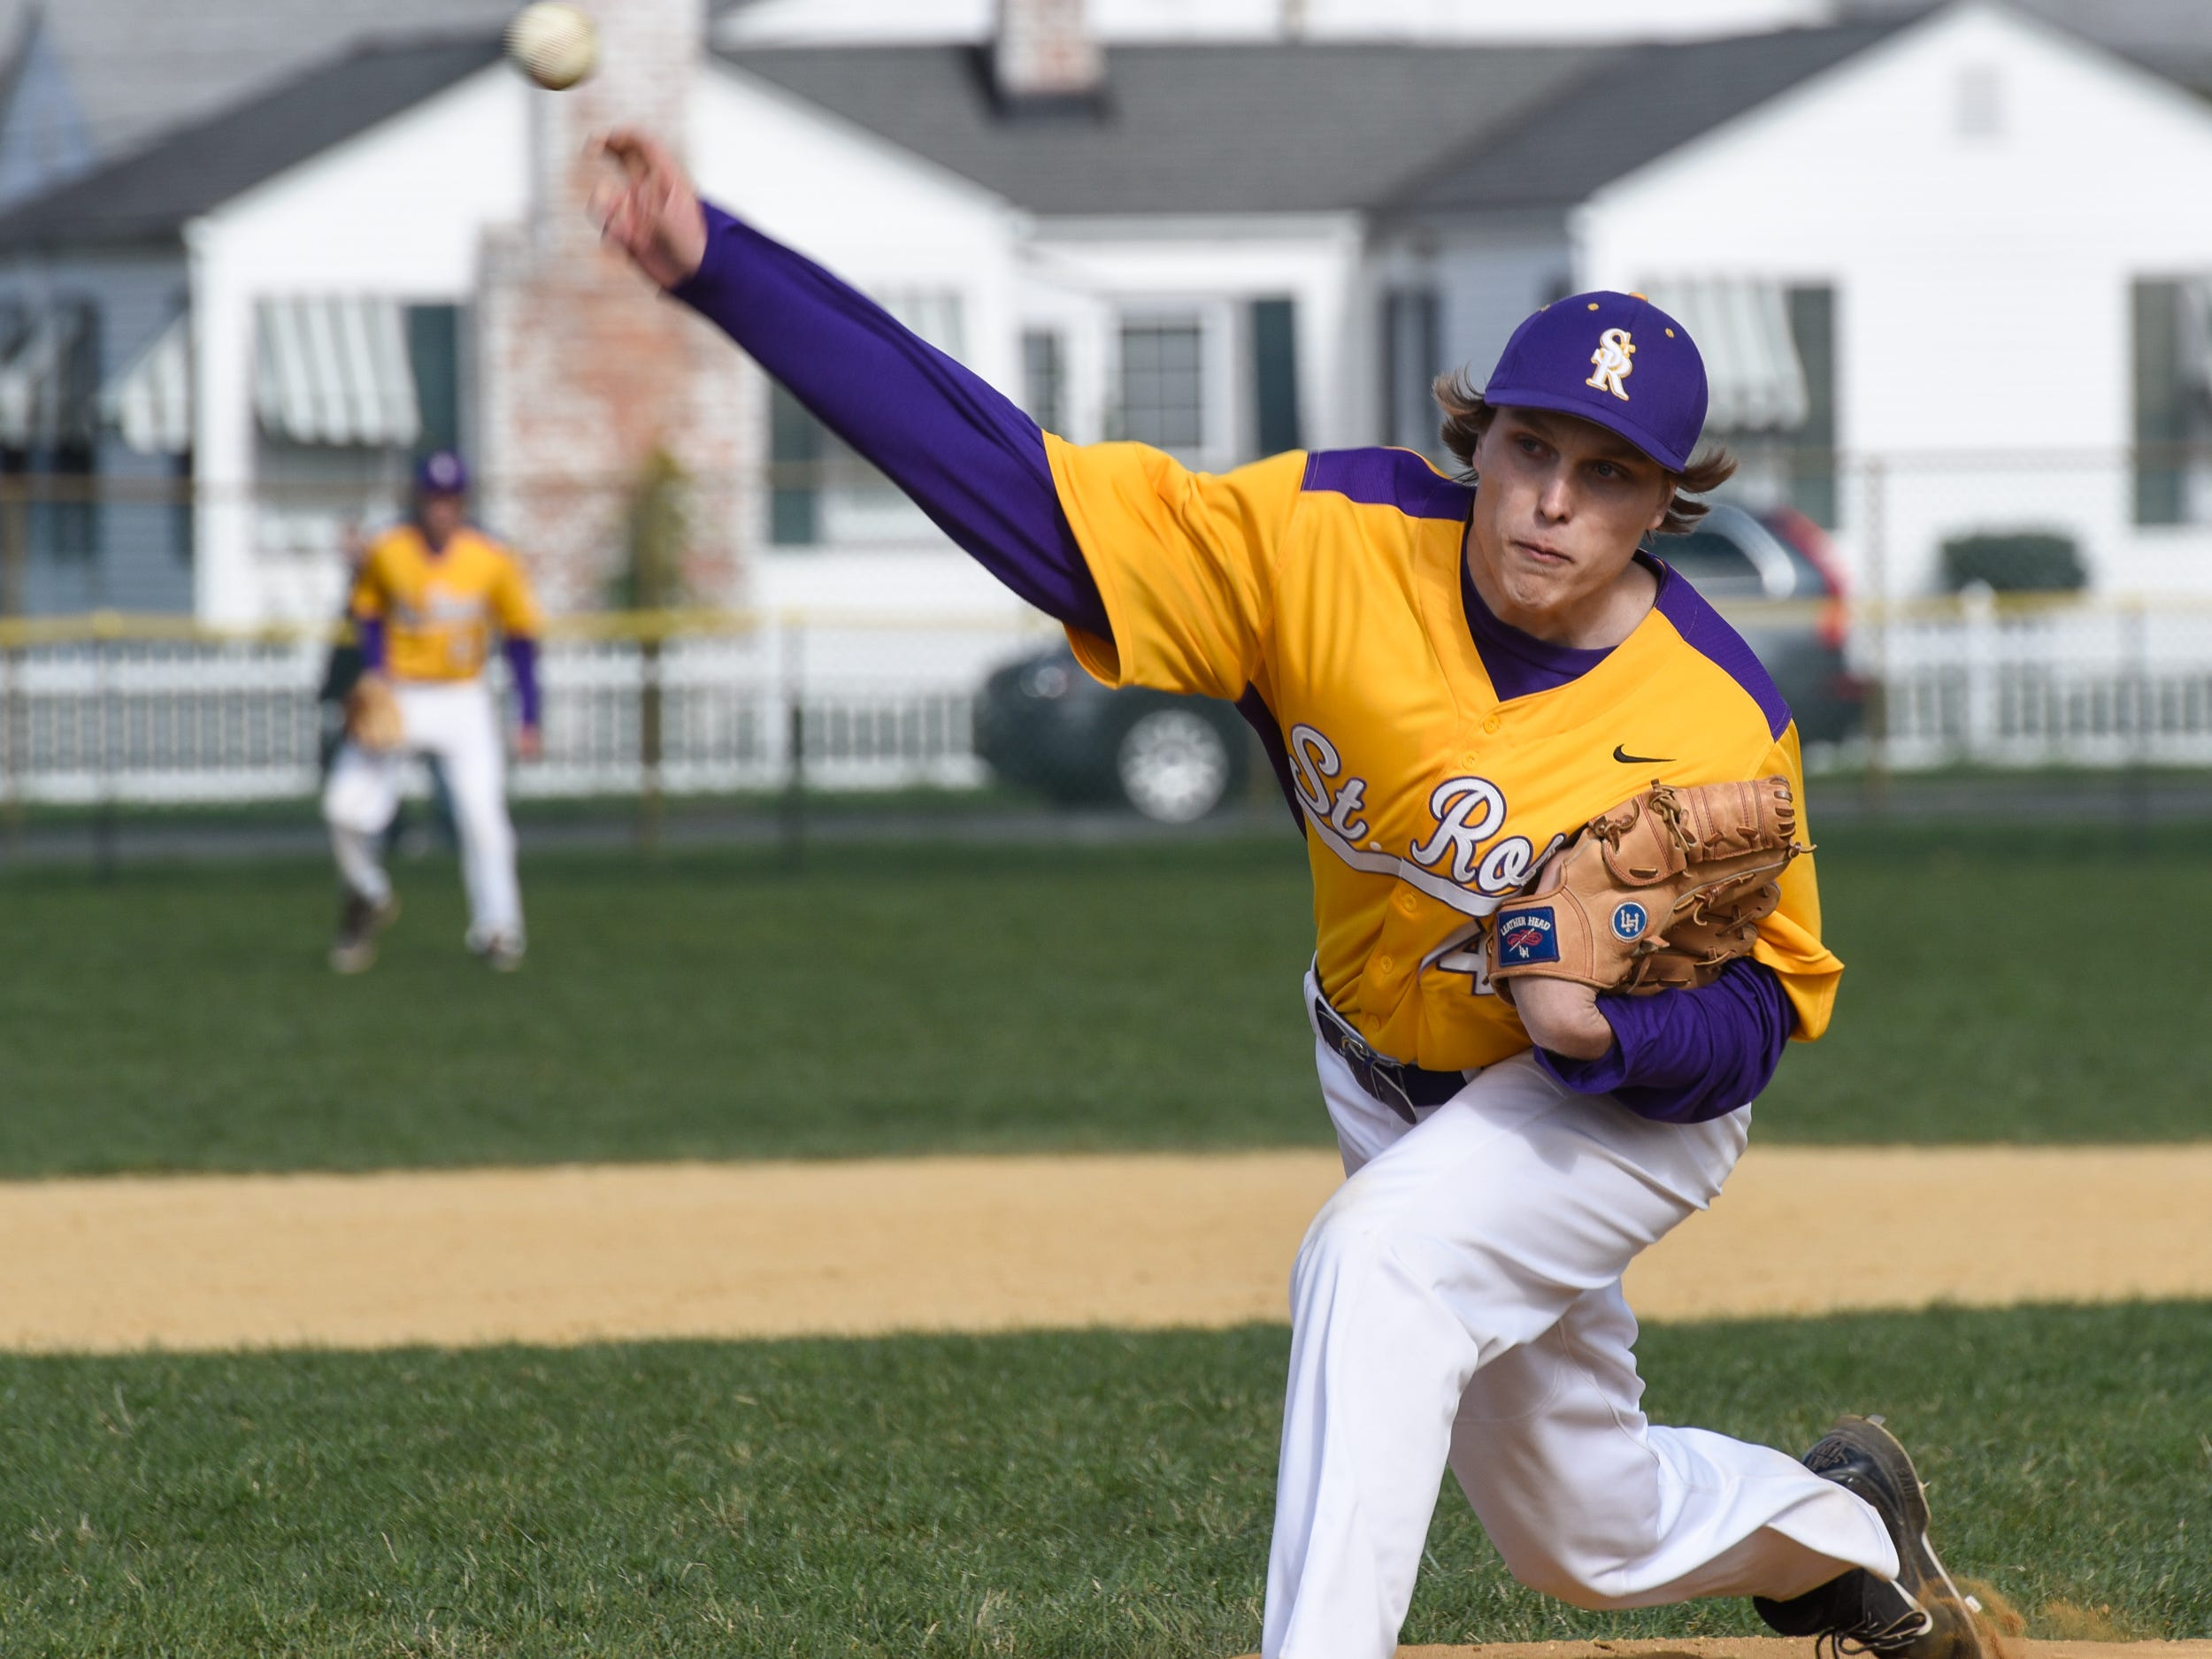 Jason Criscuolo pitched 3 2/3 innings of scoreless relief Monday to pick up the win in St. Rose's victory at Point Pleasant Beach